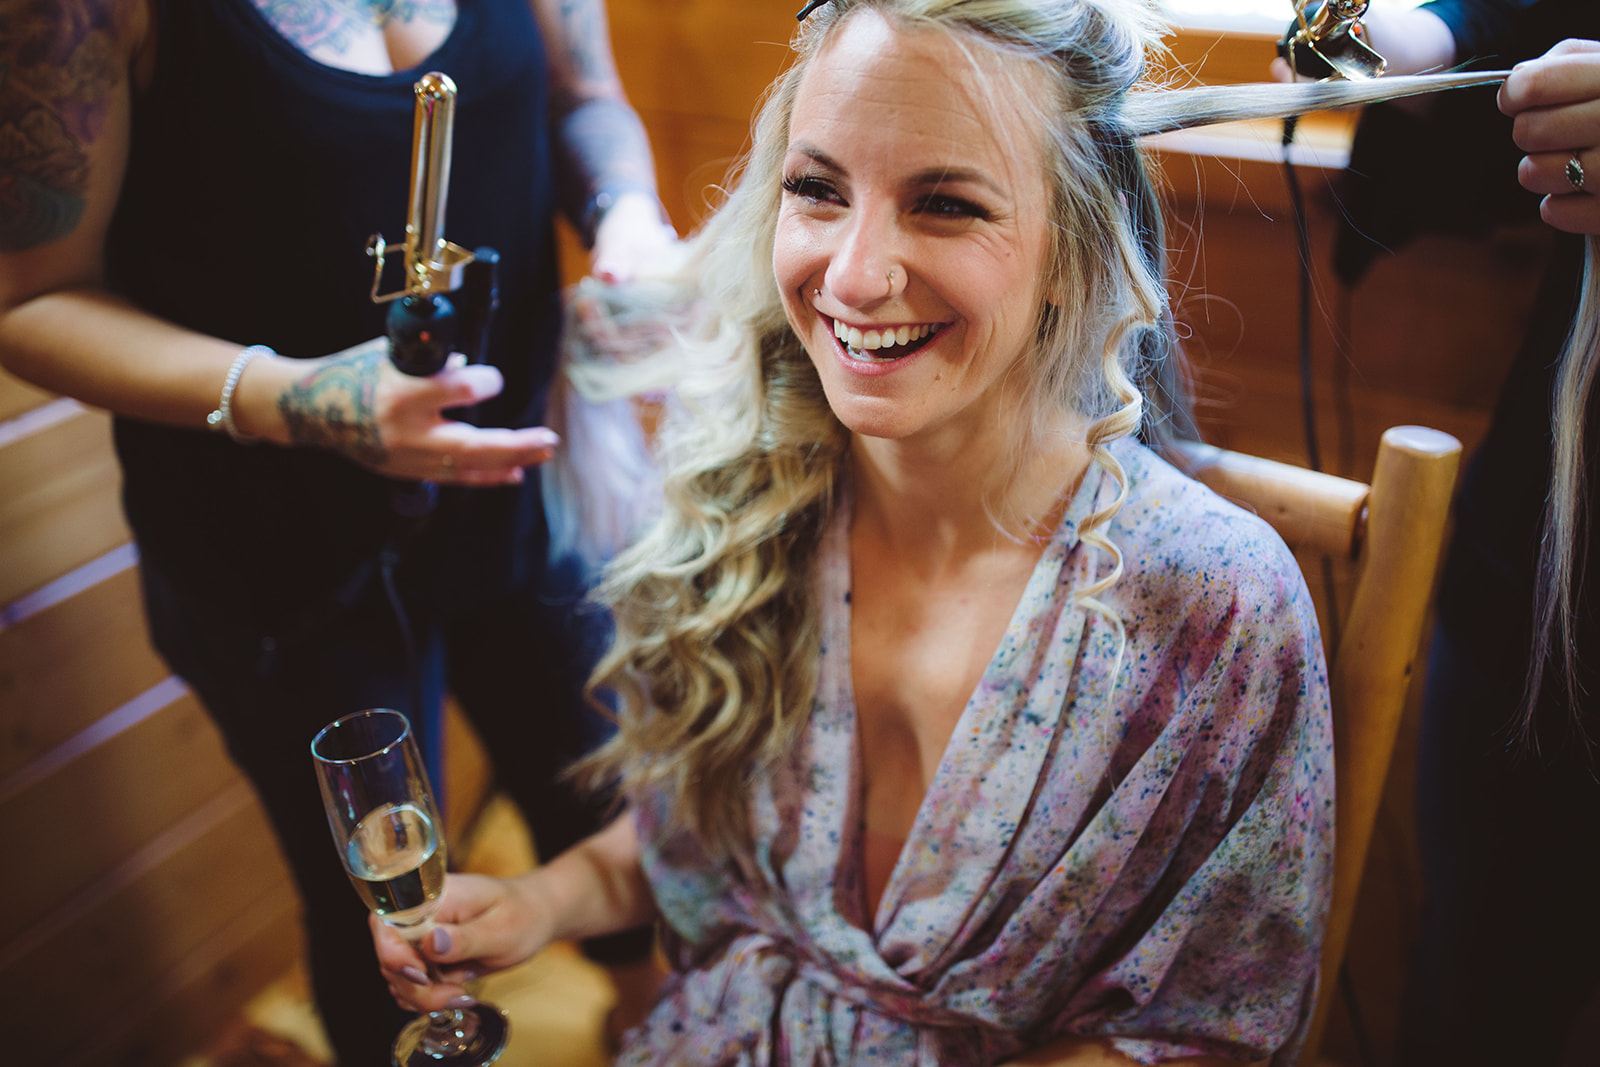 This is what a relaxed Bride looks like on her wedding day! Captured by  Marnie Cornell Photography